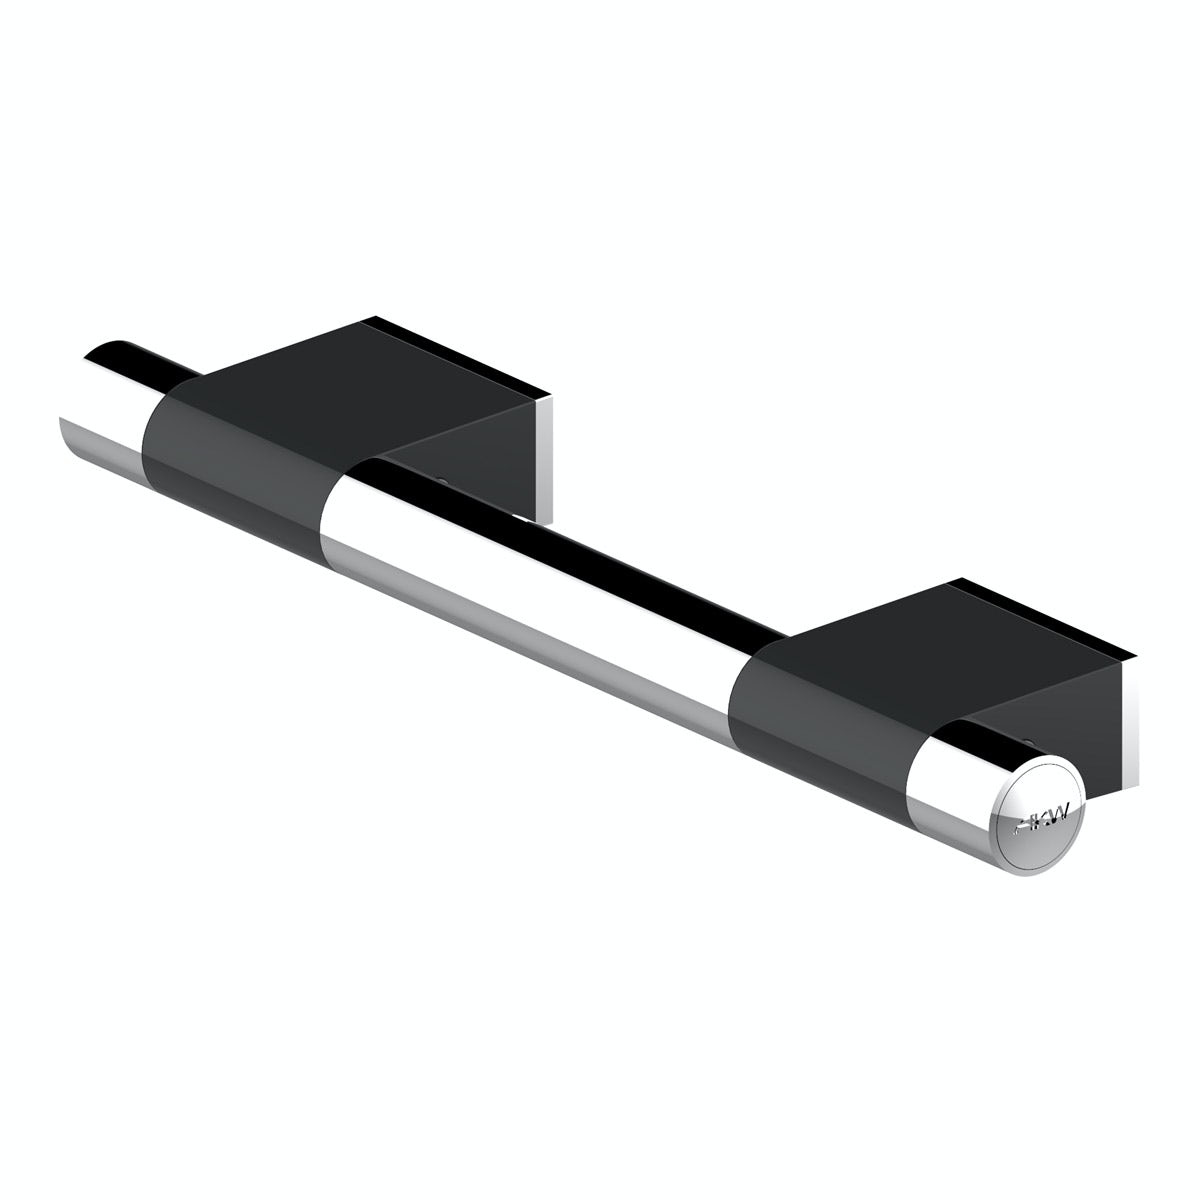 AKW Onyx grab rail black 300mm